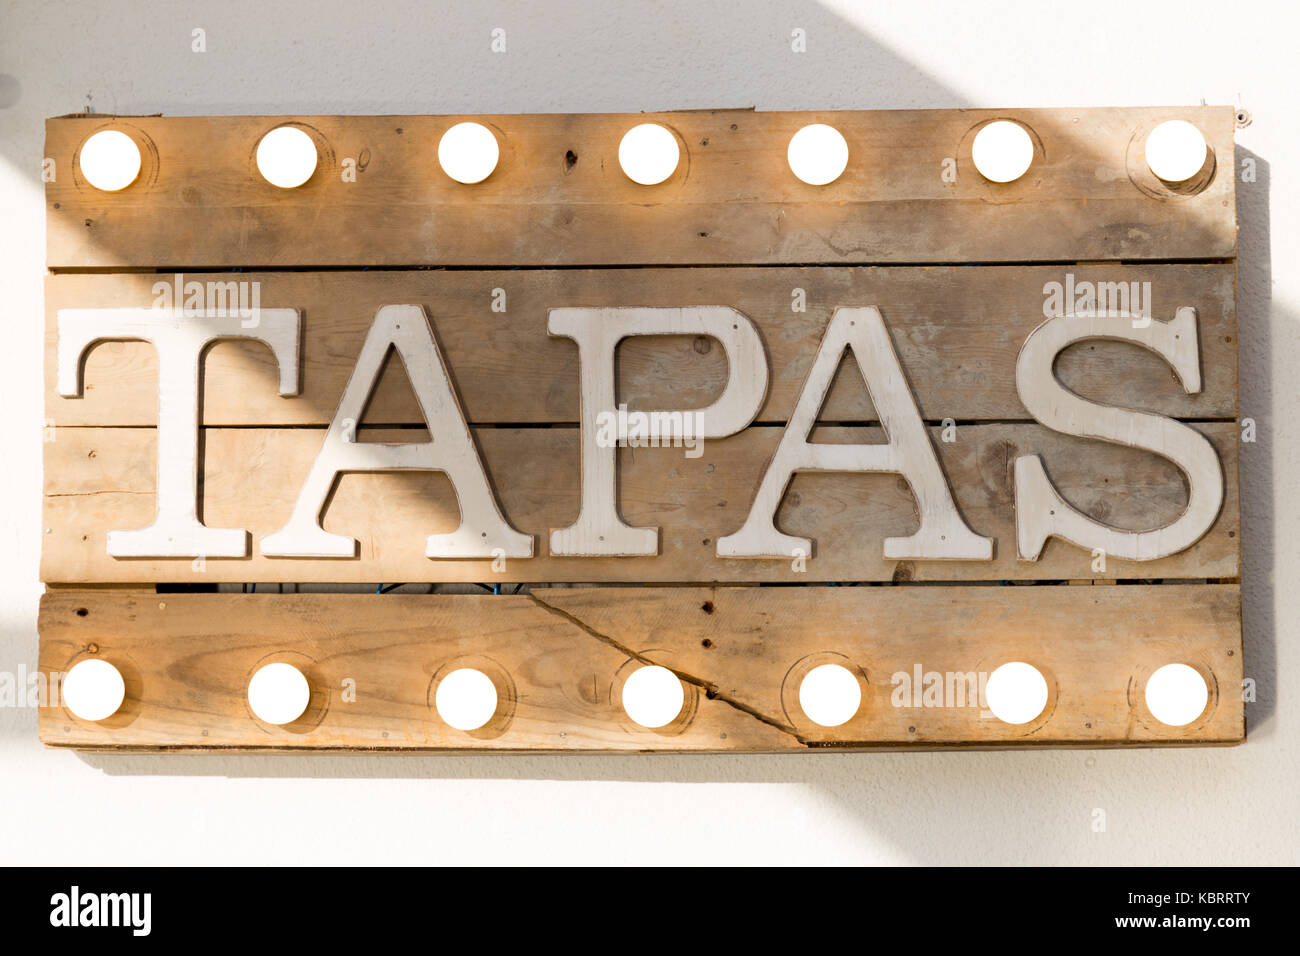 Tapas sign made of wooden planks and light bulbs on top and bottom - Stock Image